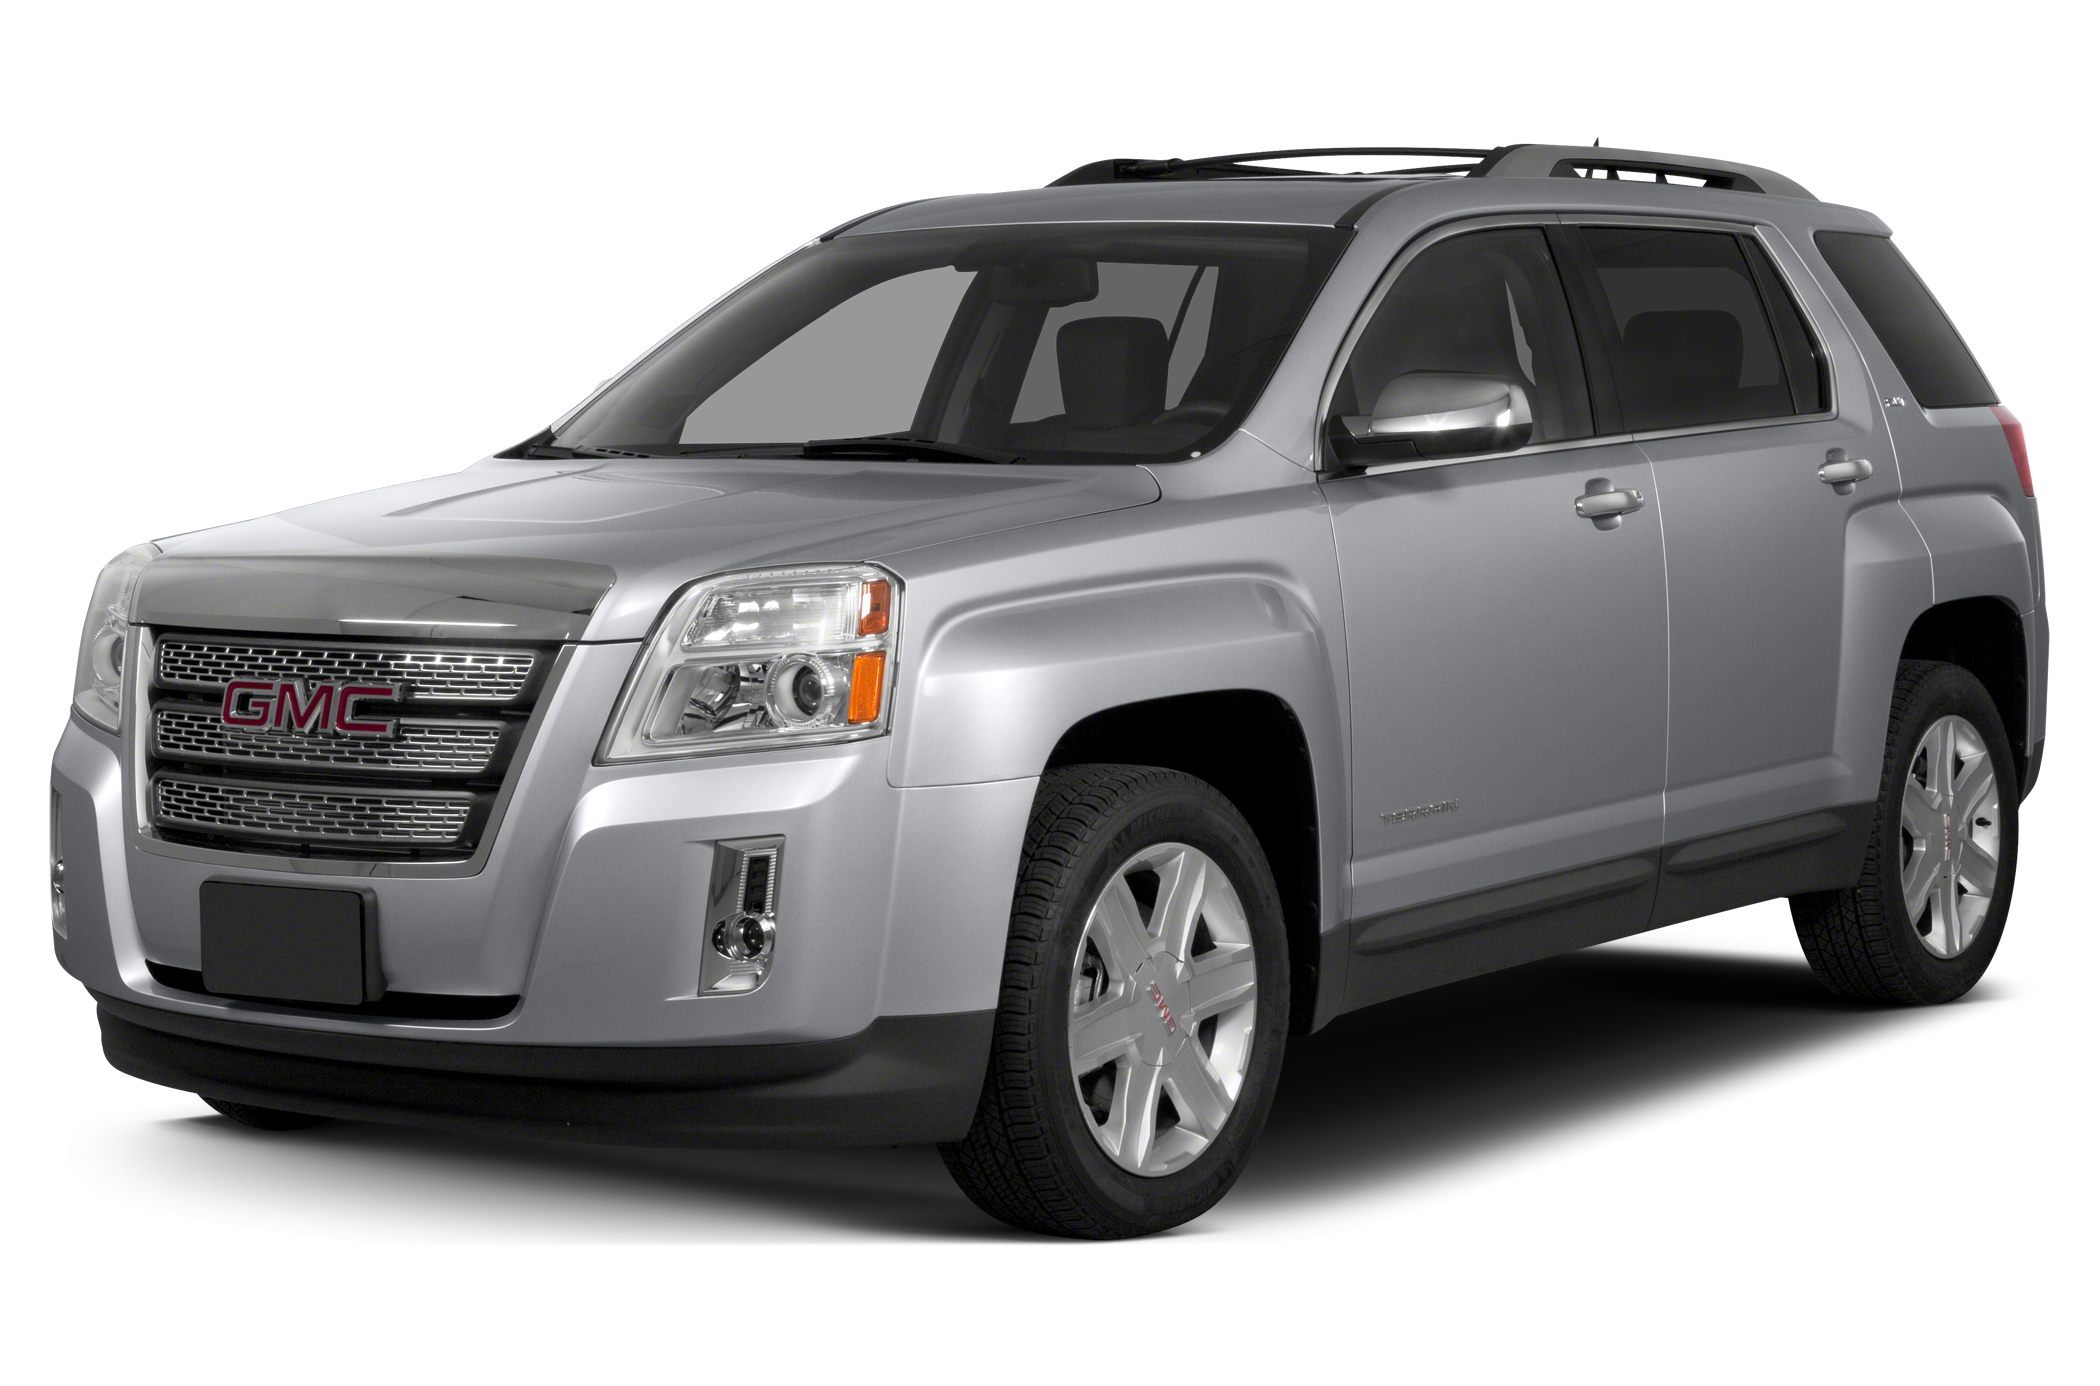 2015 GMC Terrain SLT-1 SUV for sale in Tifton for $32,590 with 0 miles